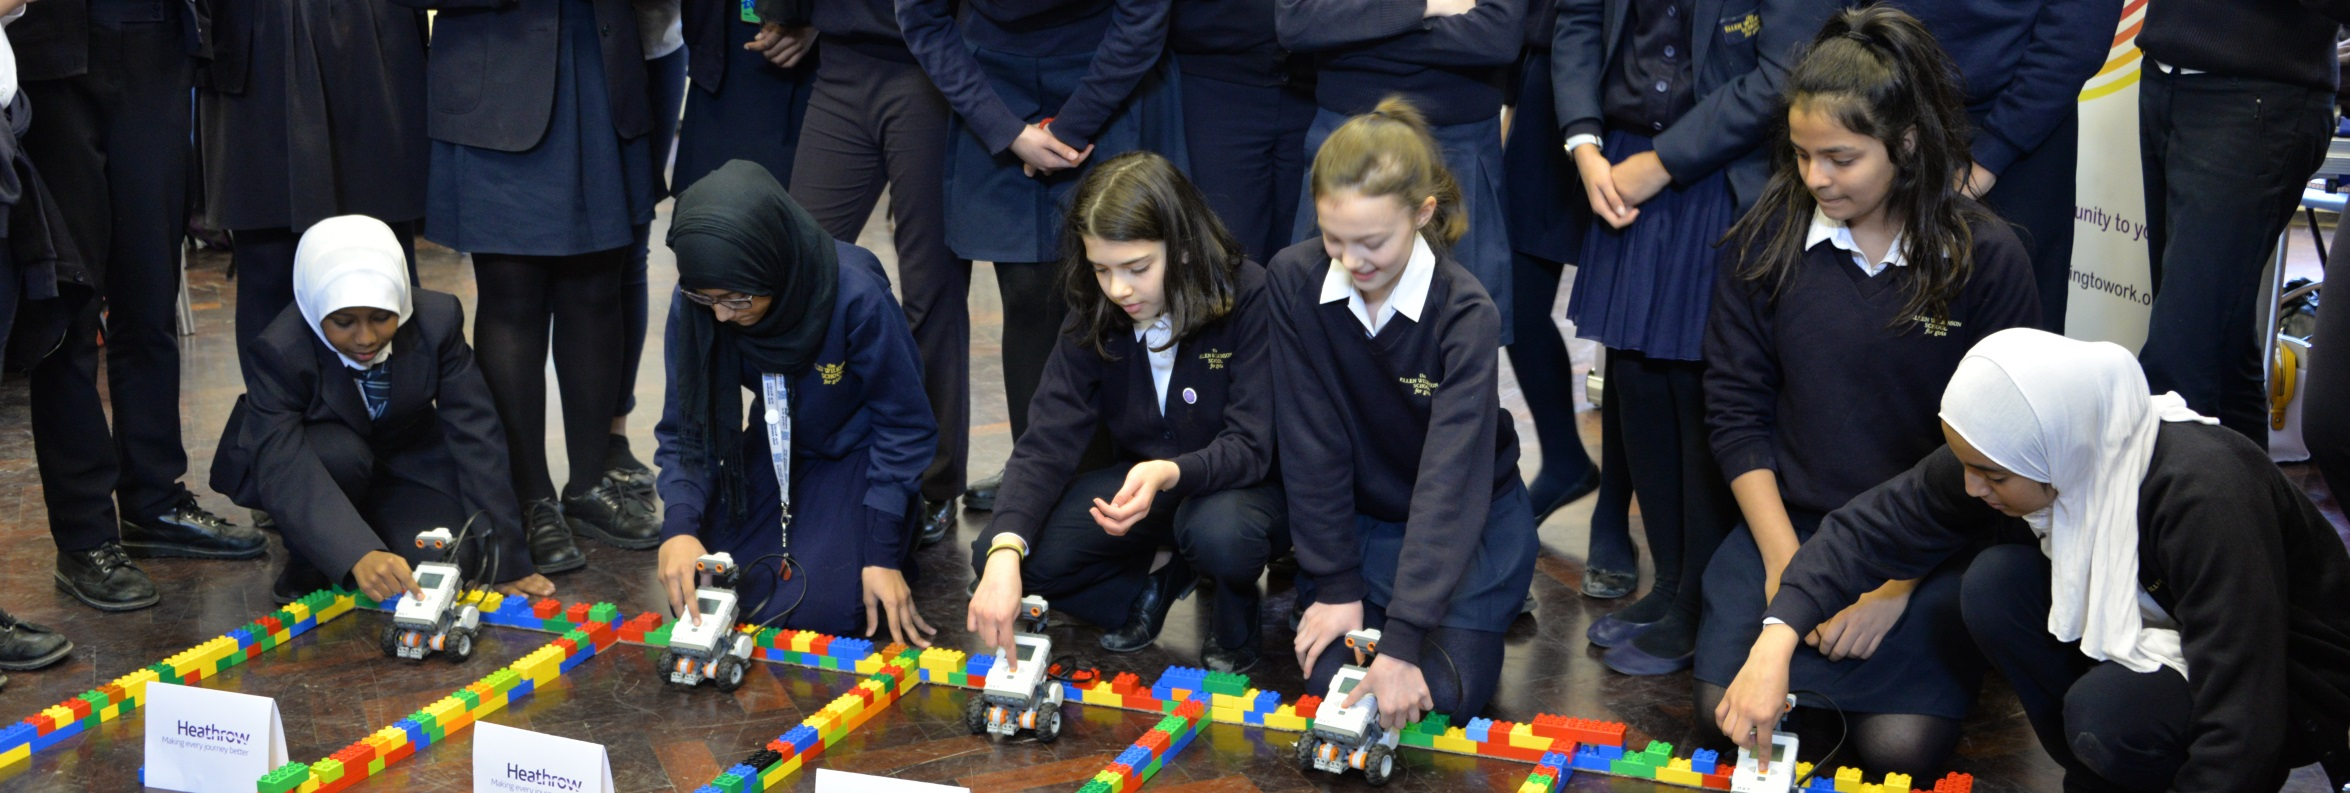 Heathrow Coding Challenge at the Ellen Wilkinson School for Girls, held on 8 March 2016. Image courtesy of Heathrow